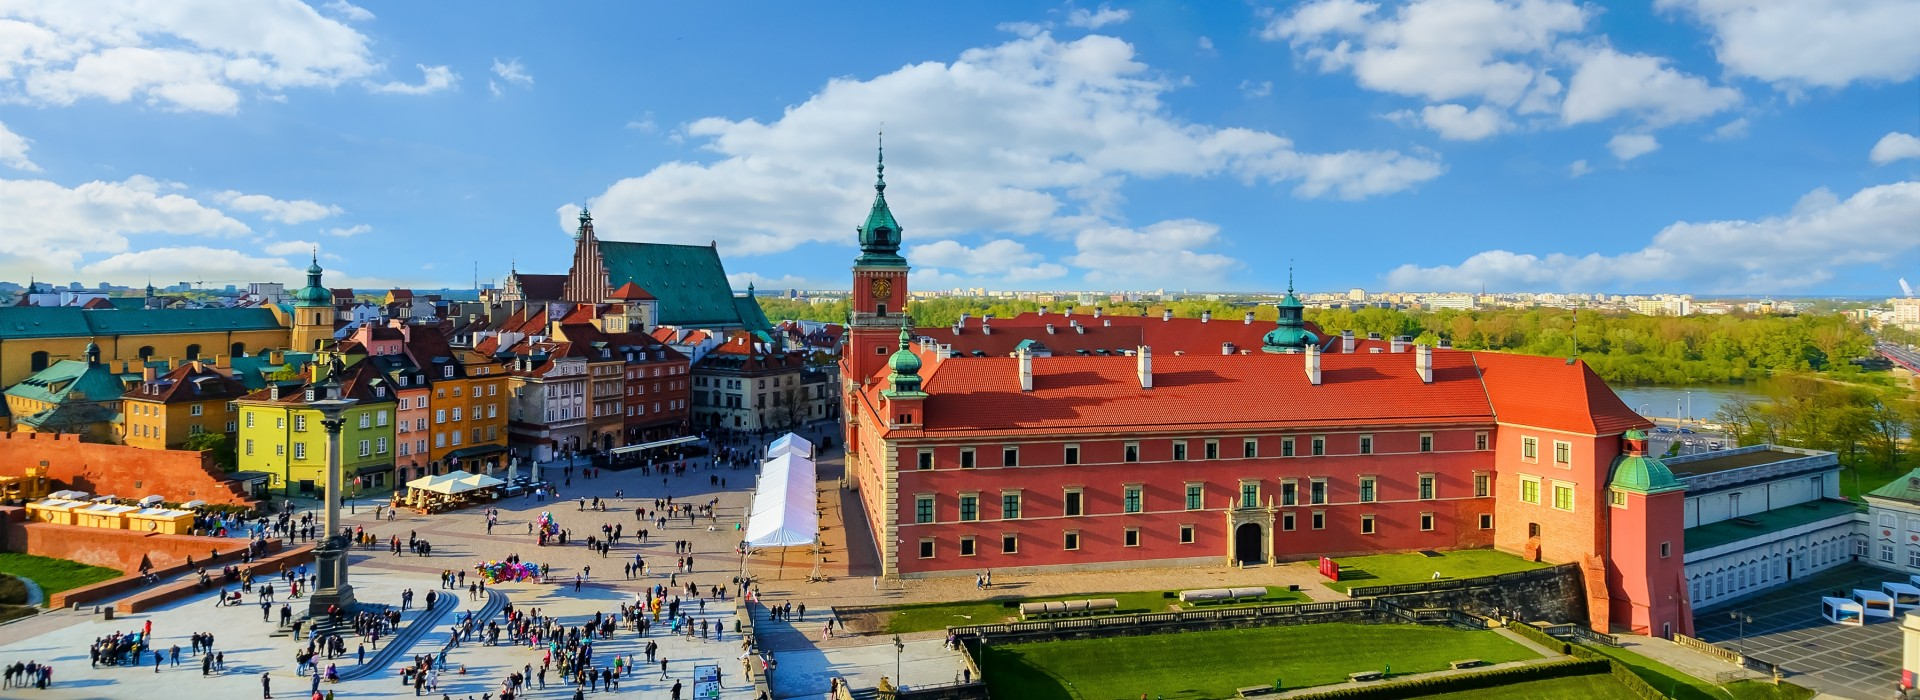 Travelling Poland - Tours and Holiday Packages in Poland